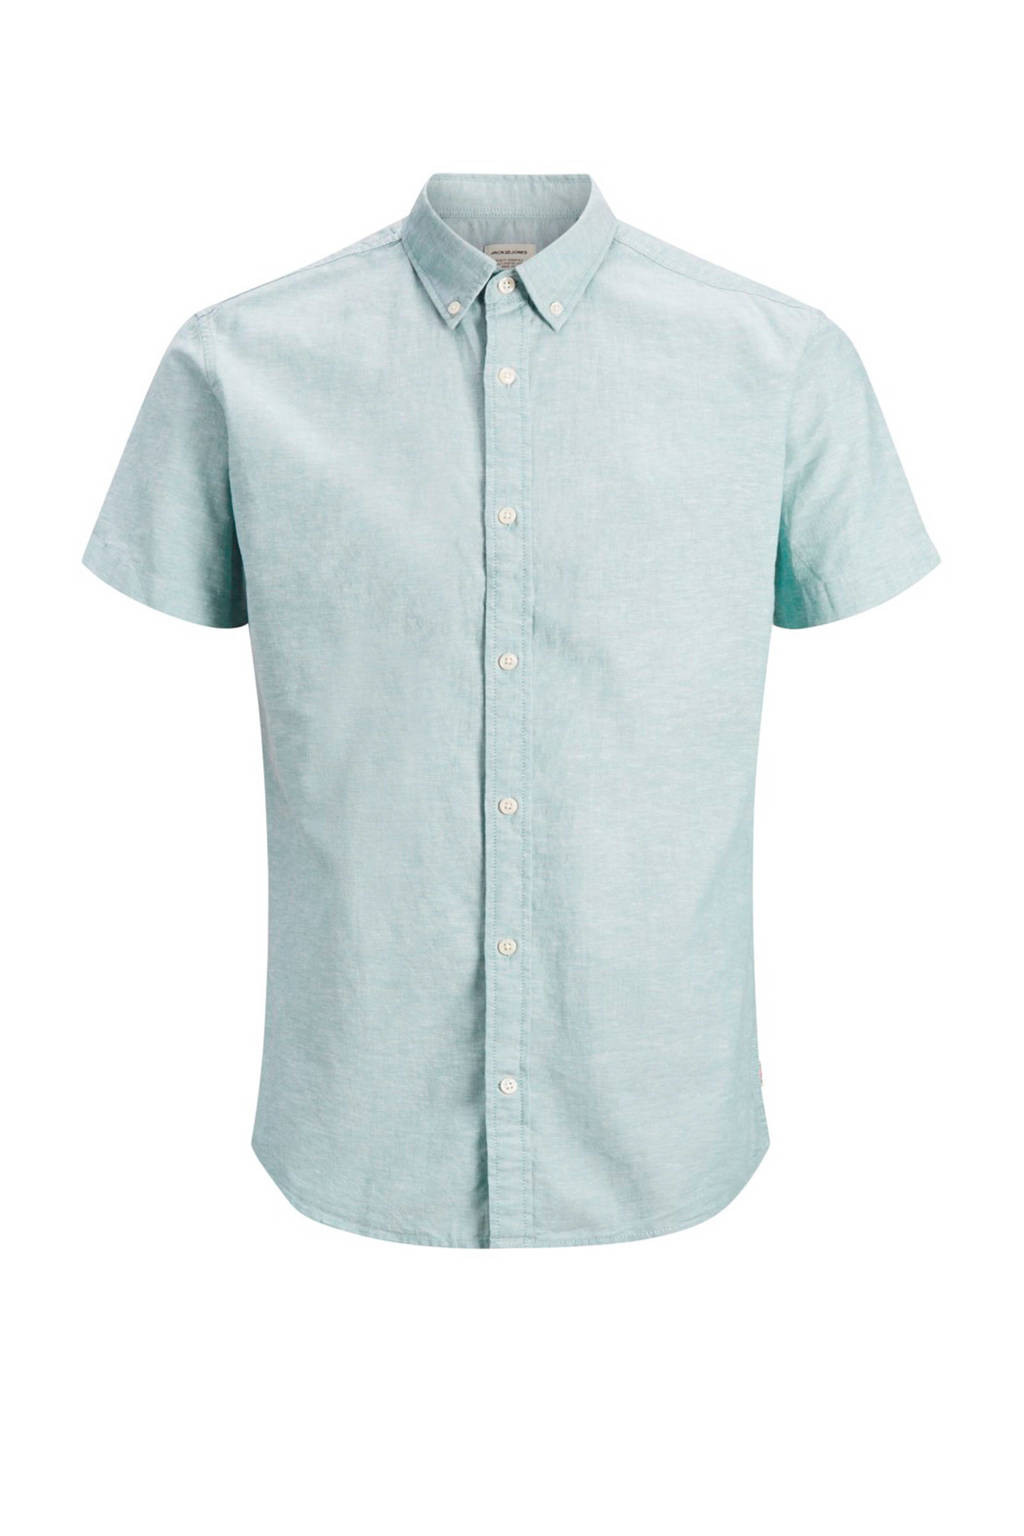 Jack & Jones Essentials overhemd, Mintgroen